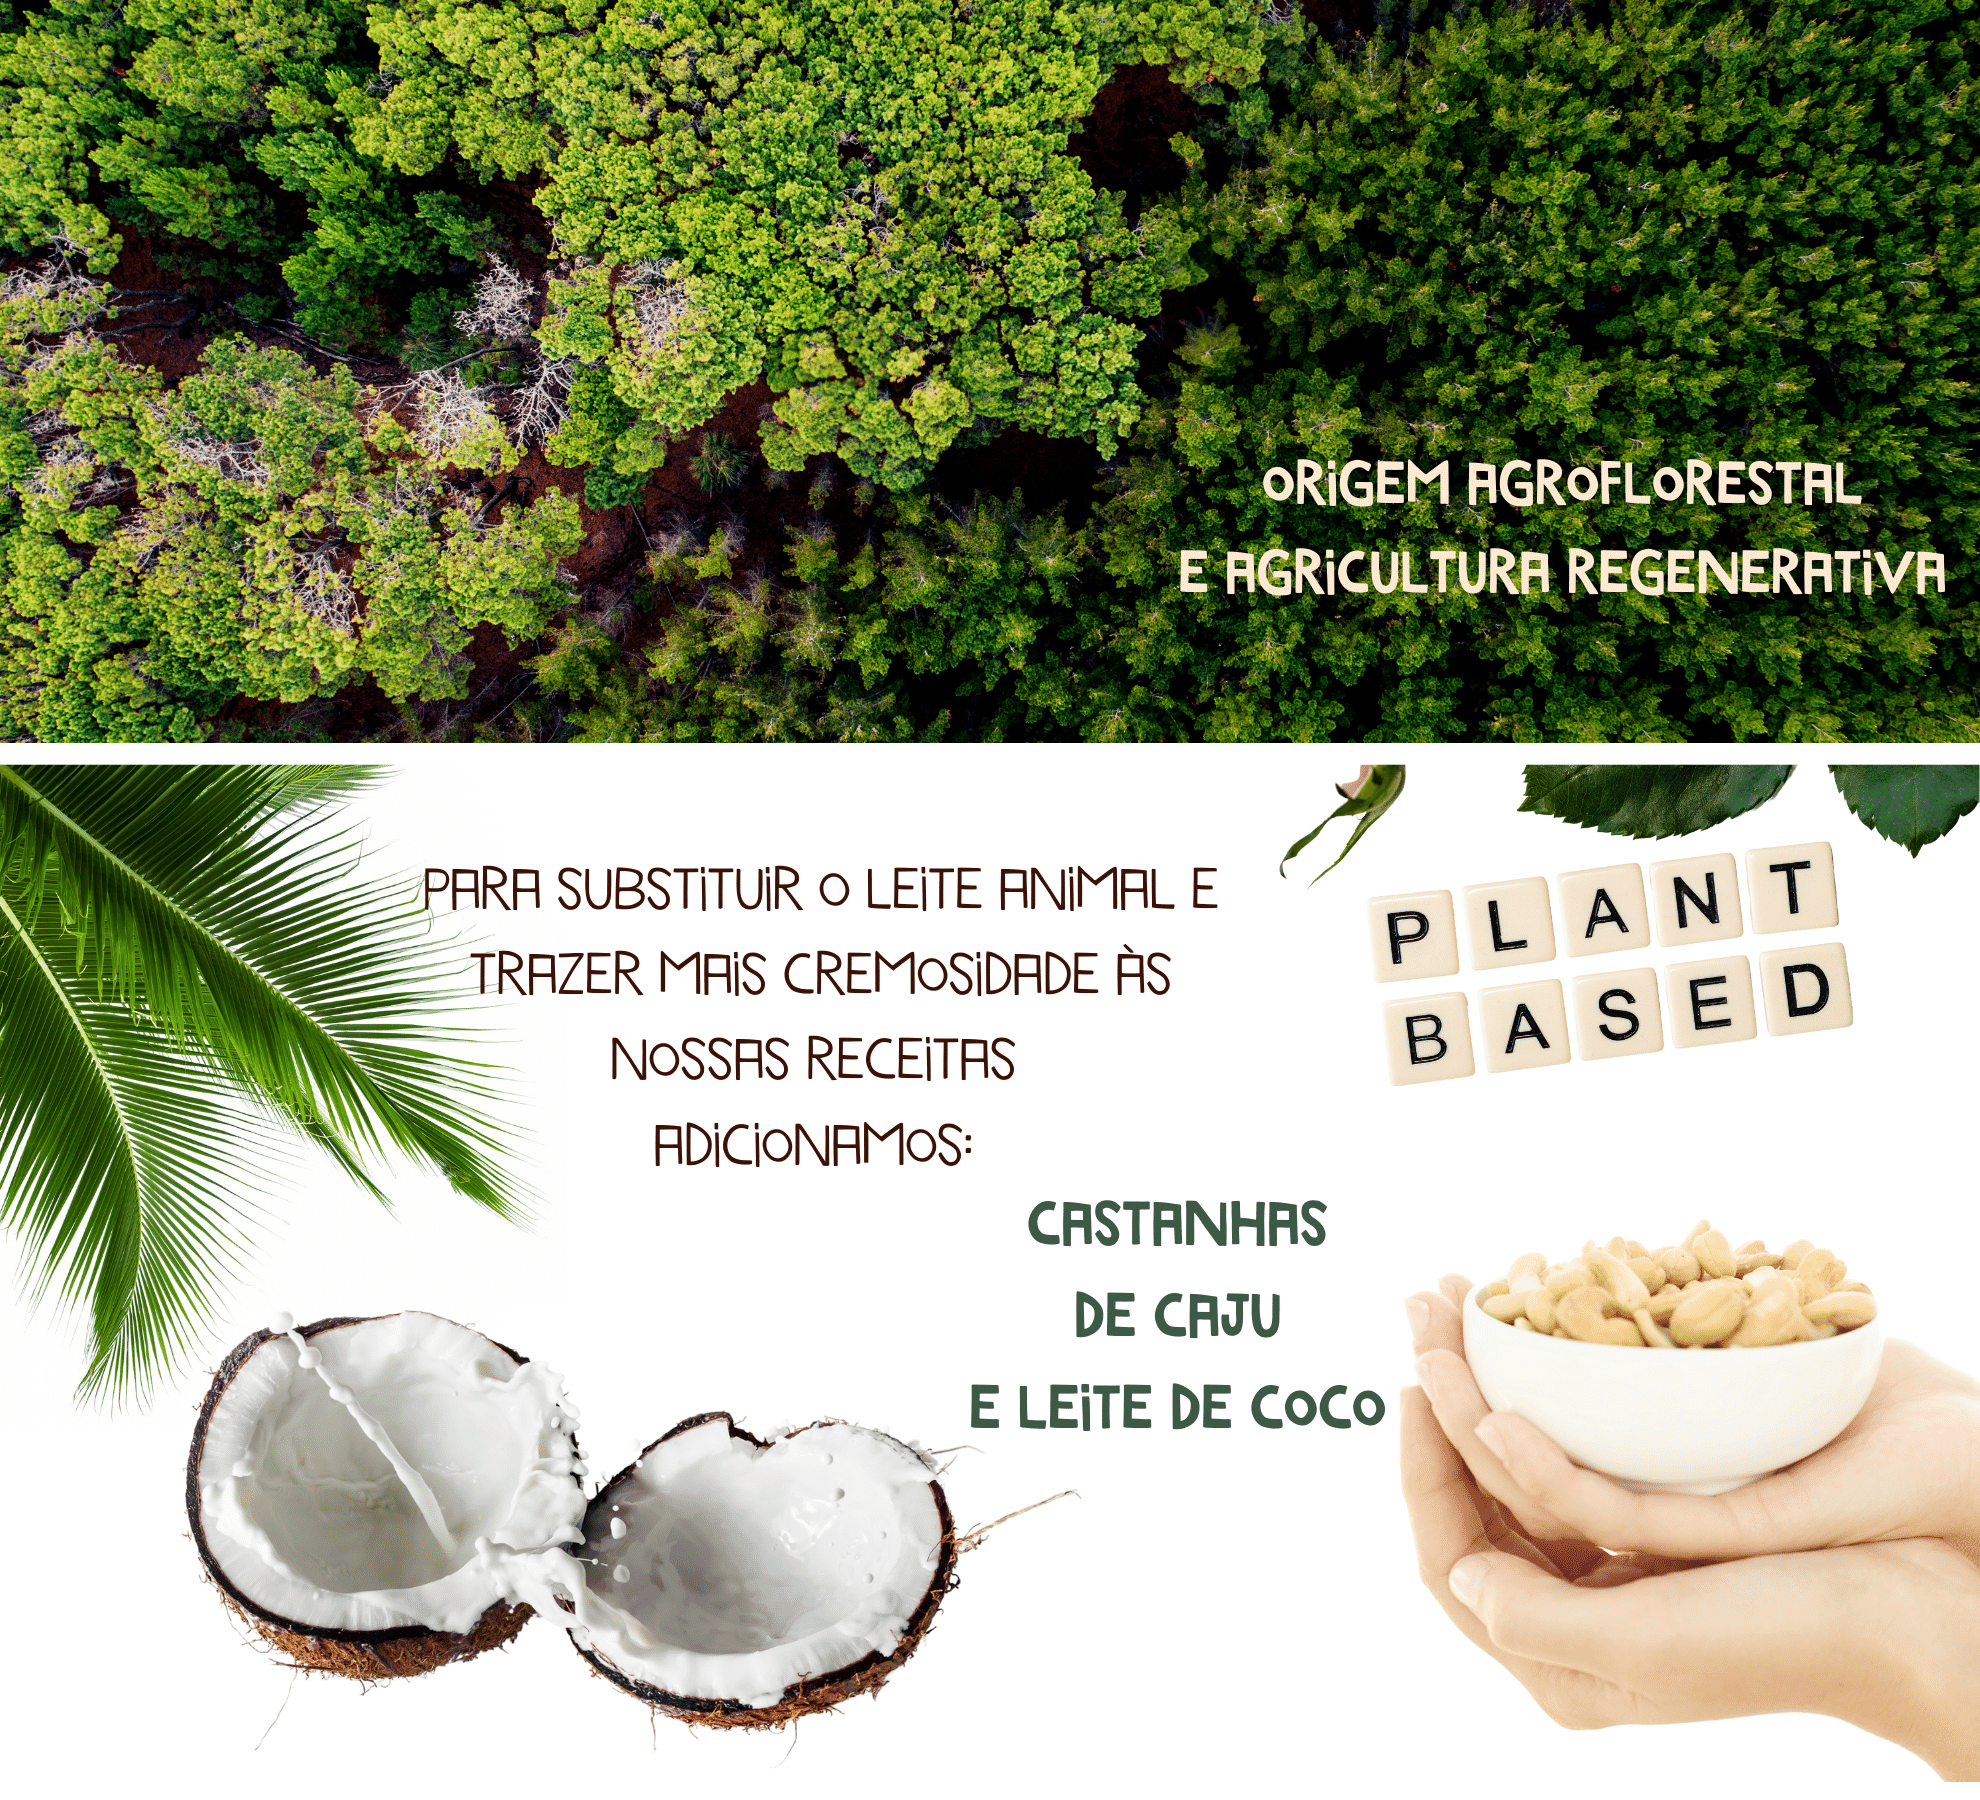 agroflorestal vegano plantbased